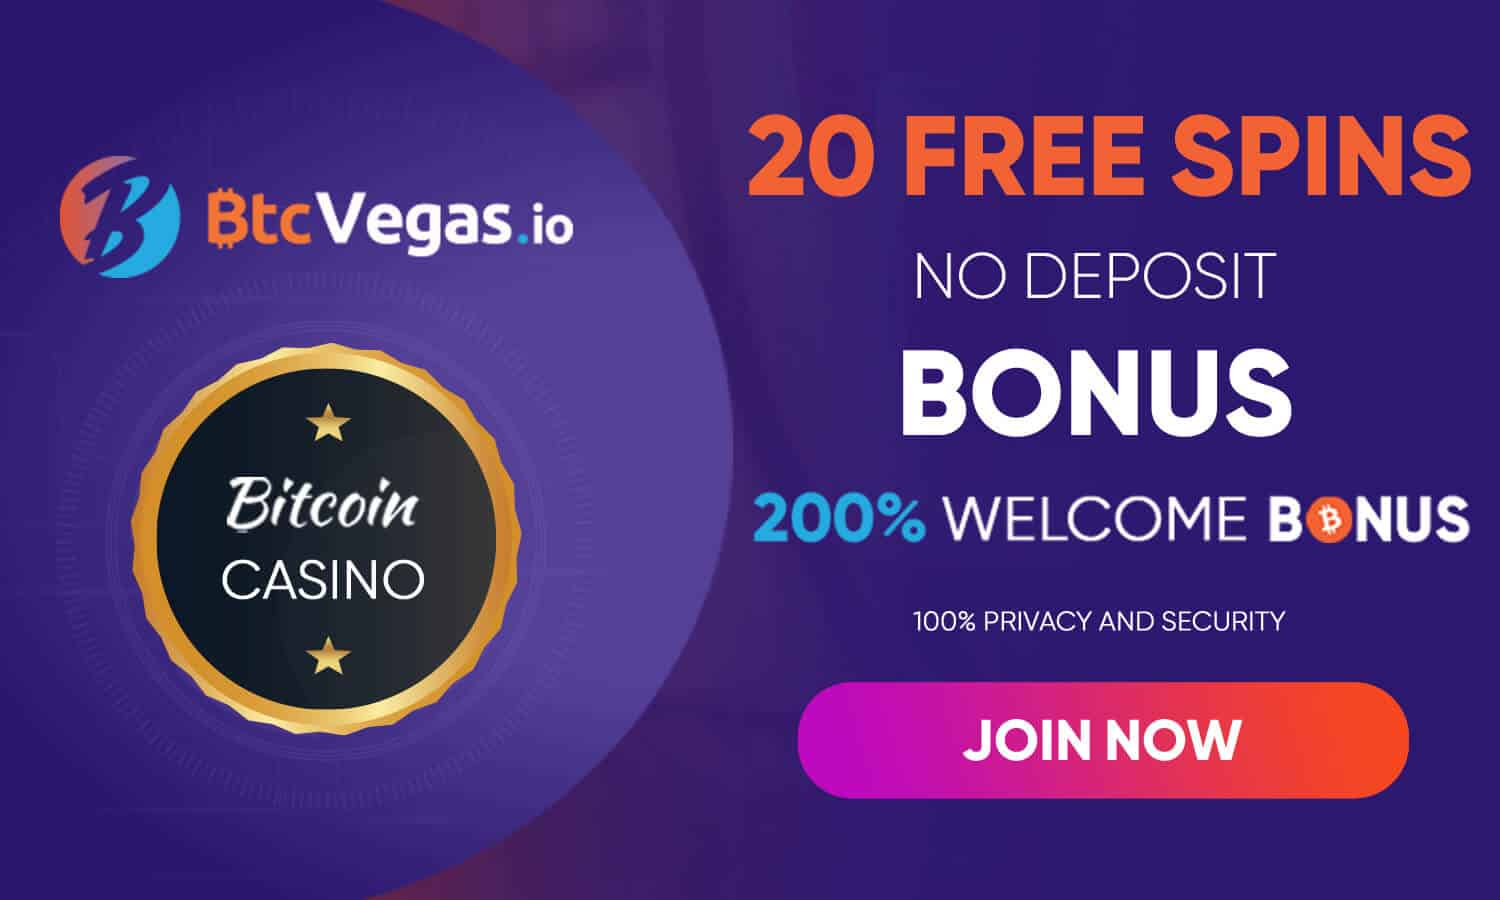 BTC Vegas Casino Casino Review